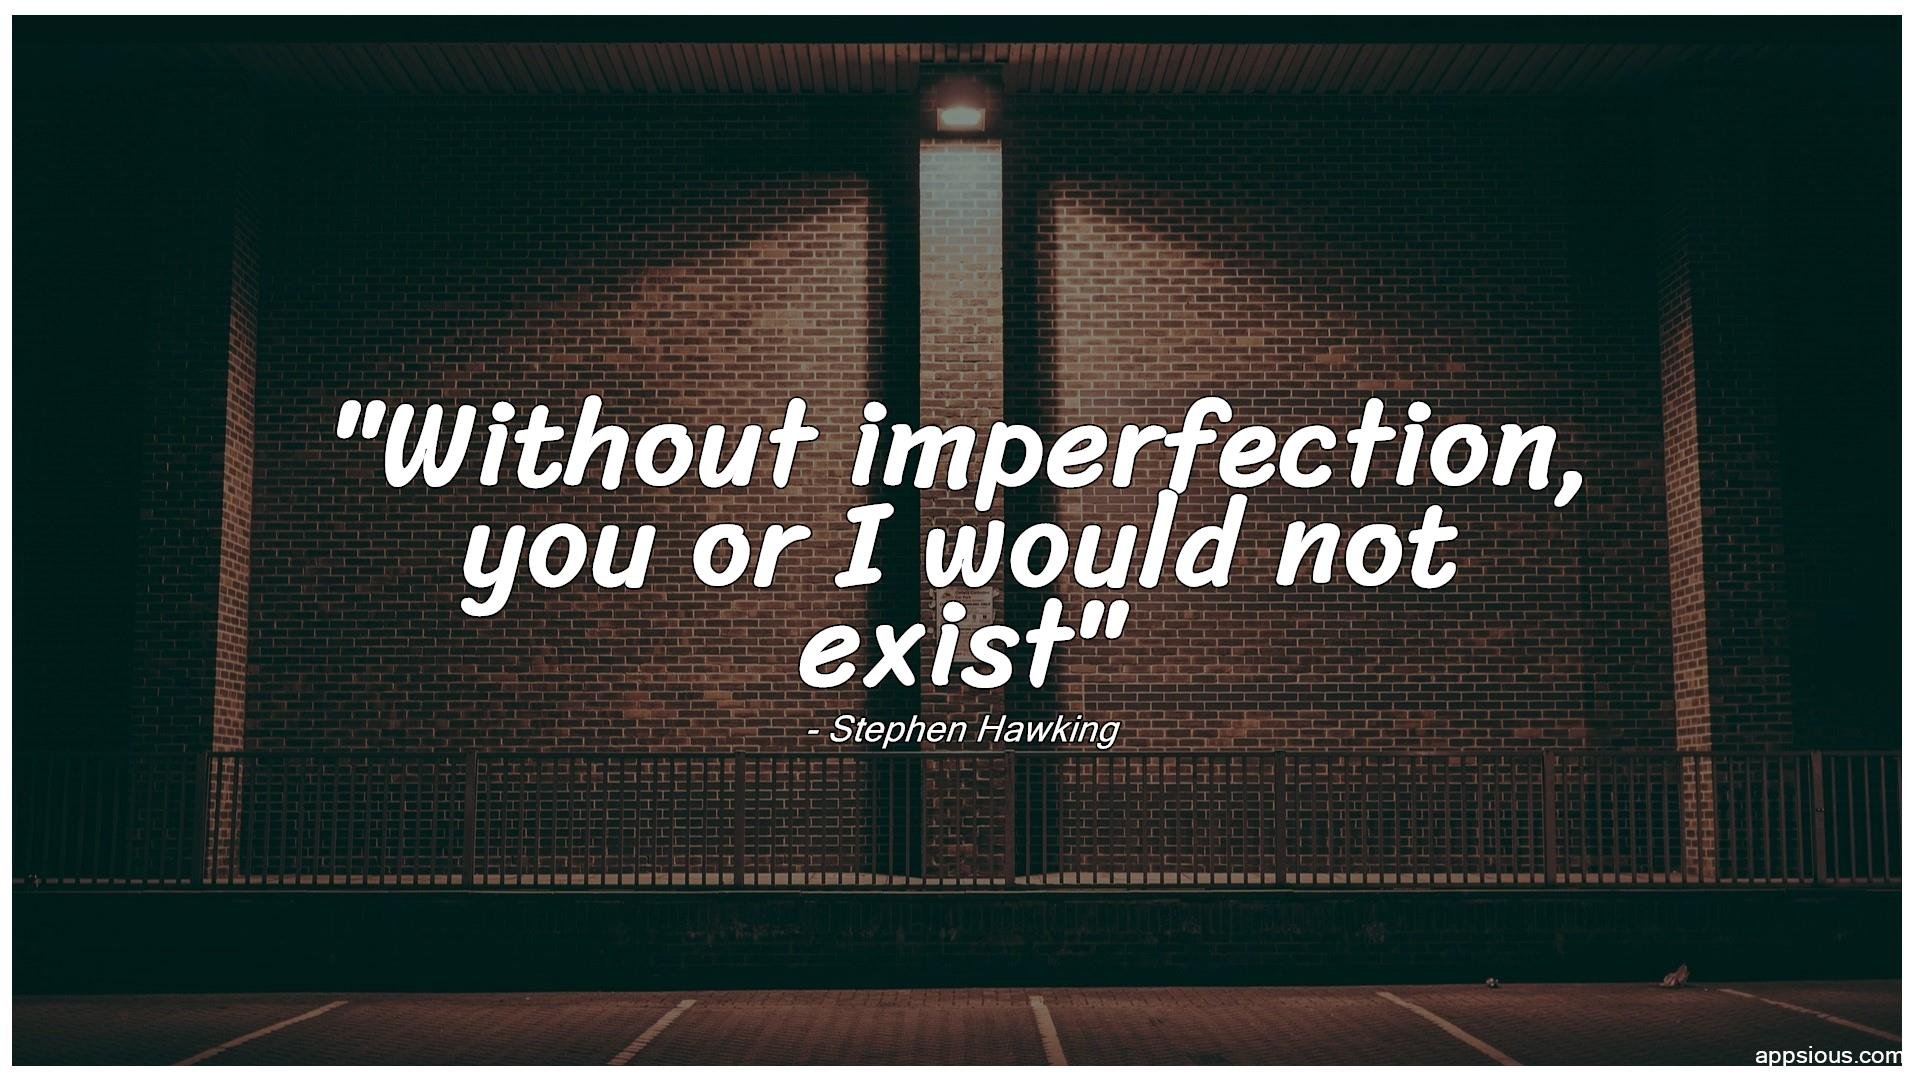 Without imperfection, you or I would not exist